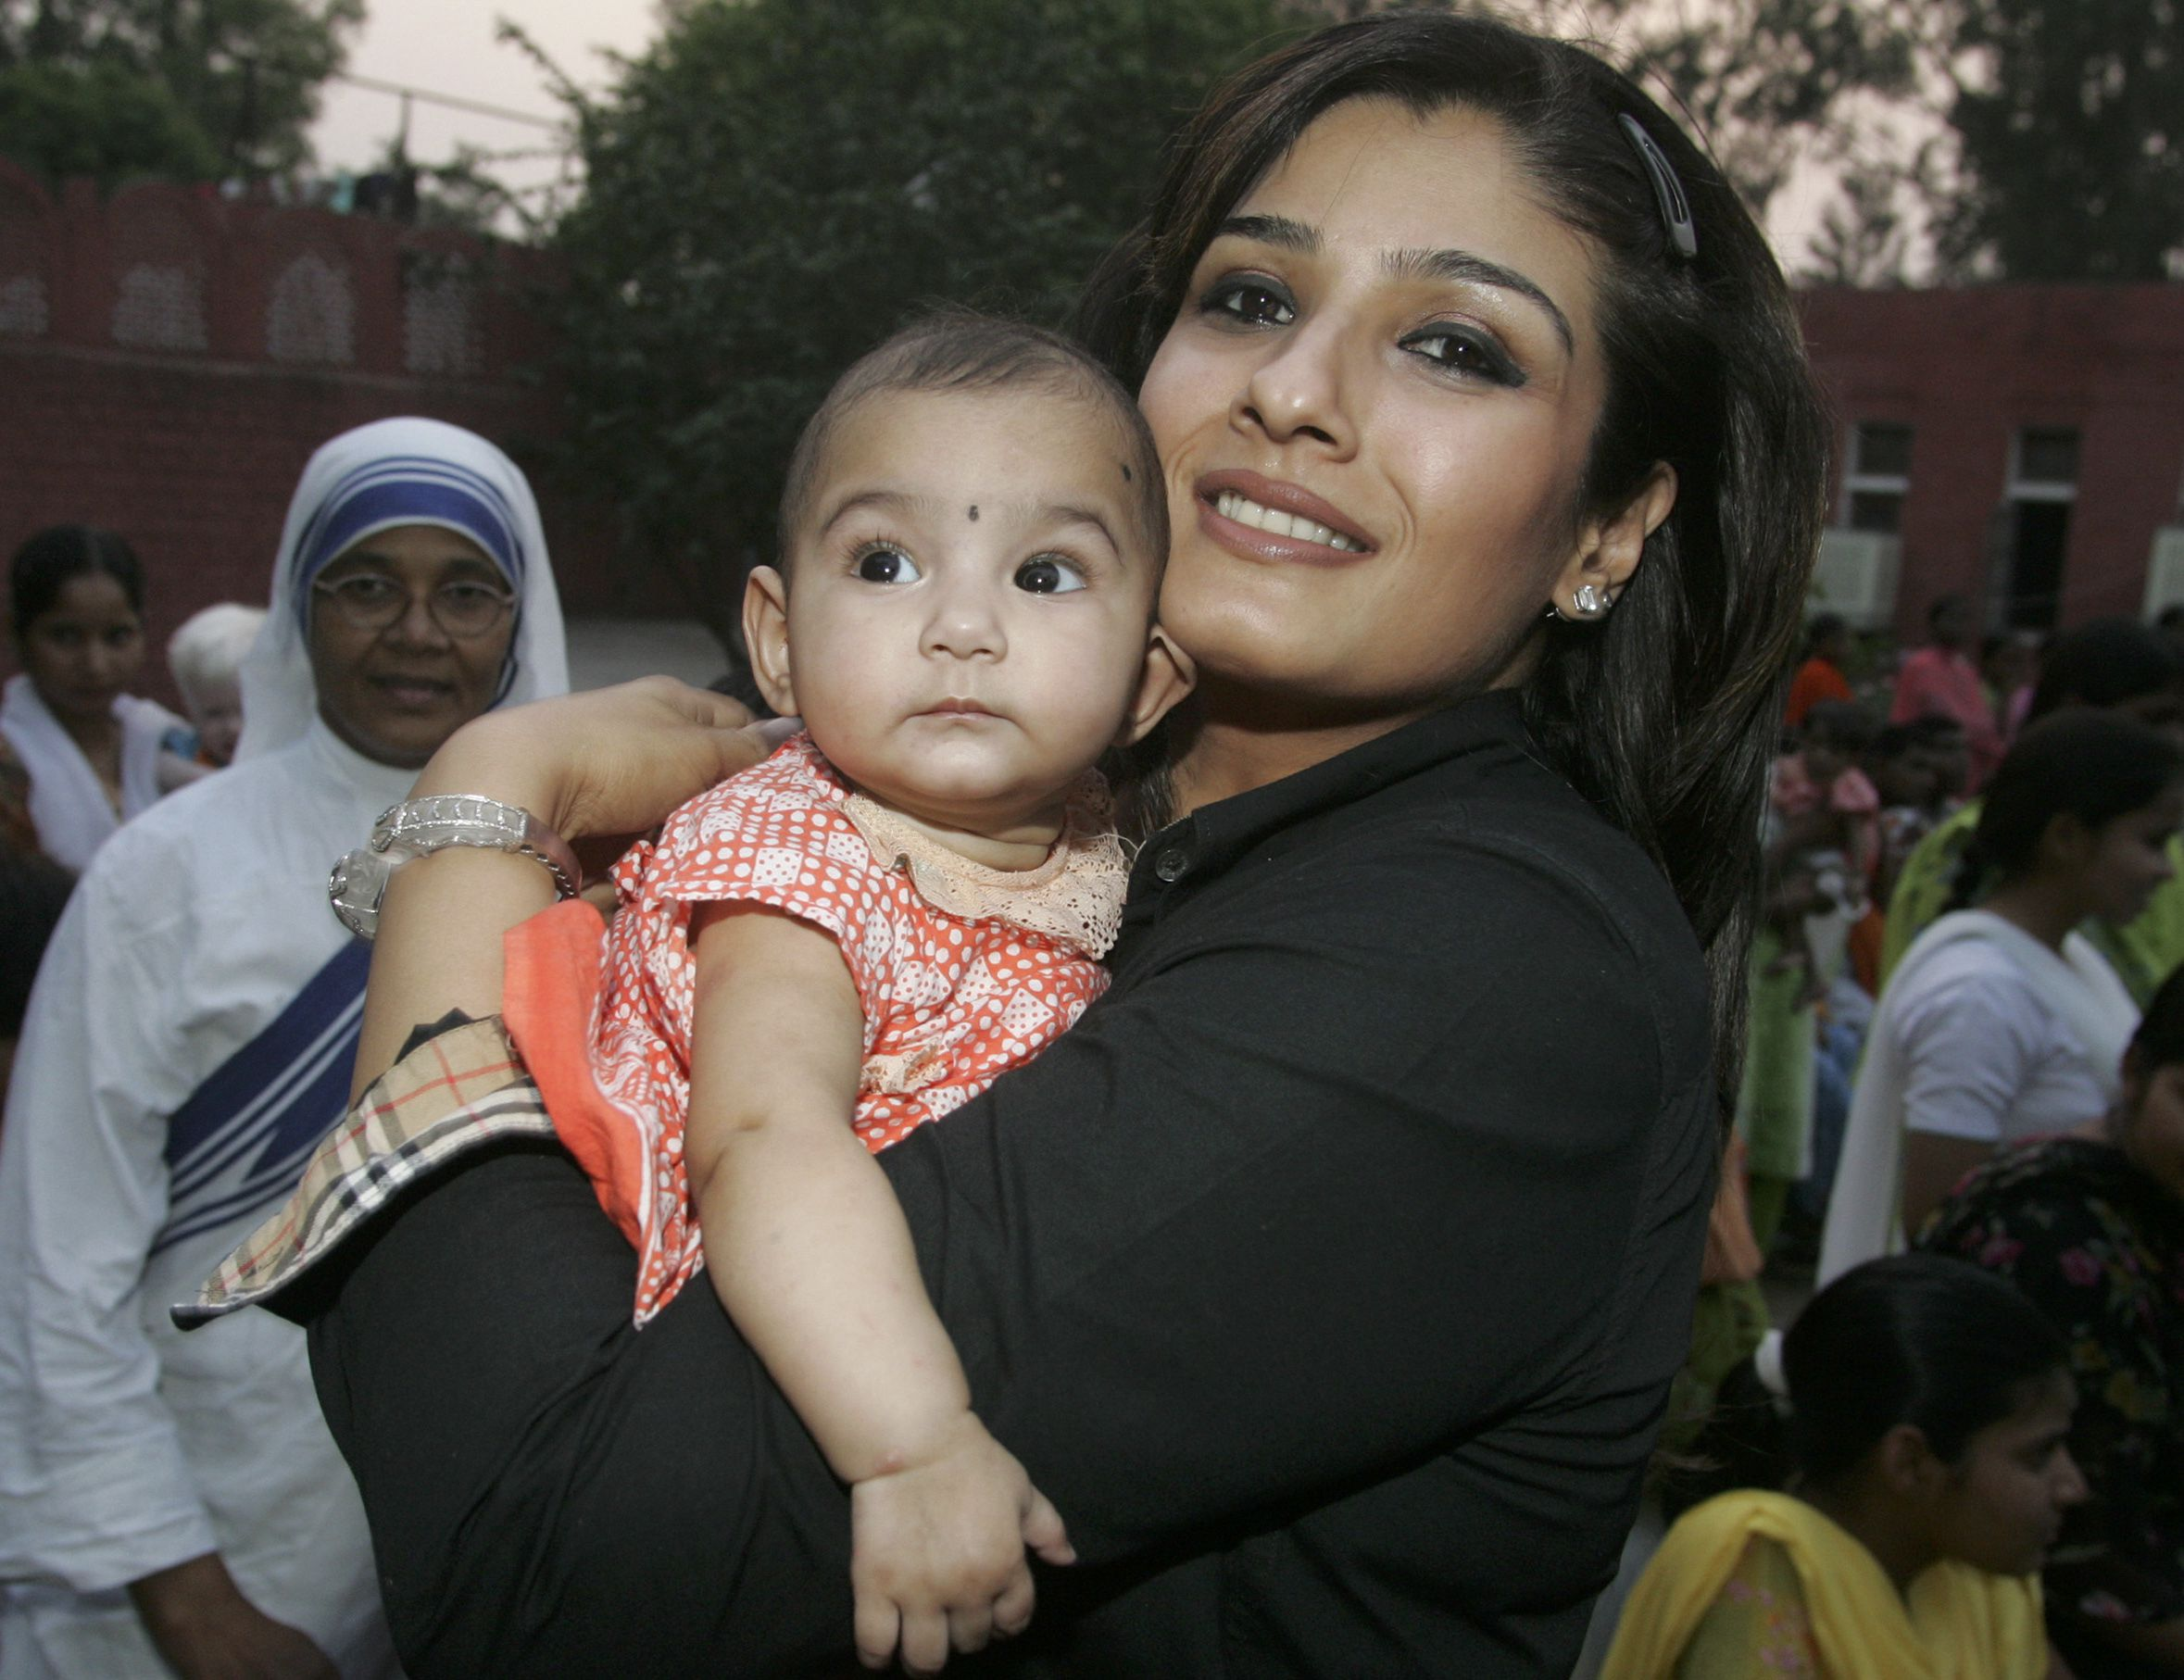 Bollywood actress Raveena Tandon holds a child during her visit at Mother Teresa orphanage in the northern Indian city of Chandigarh May 15, 2008. REUTERS/Ajay Verma (INDIA) - RTX5QWW